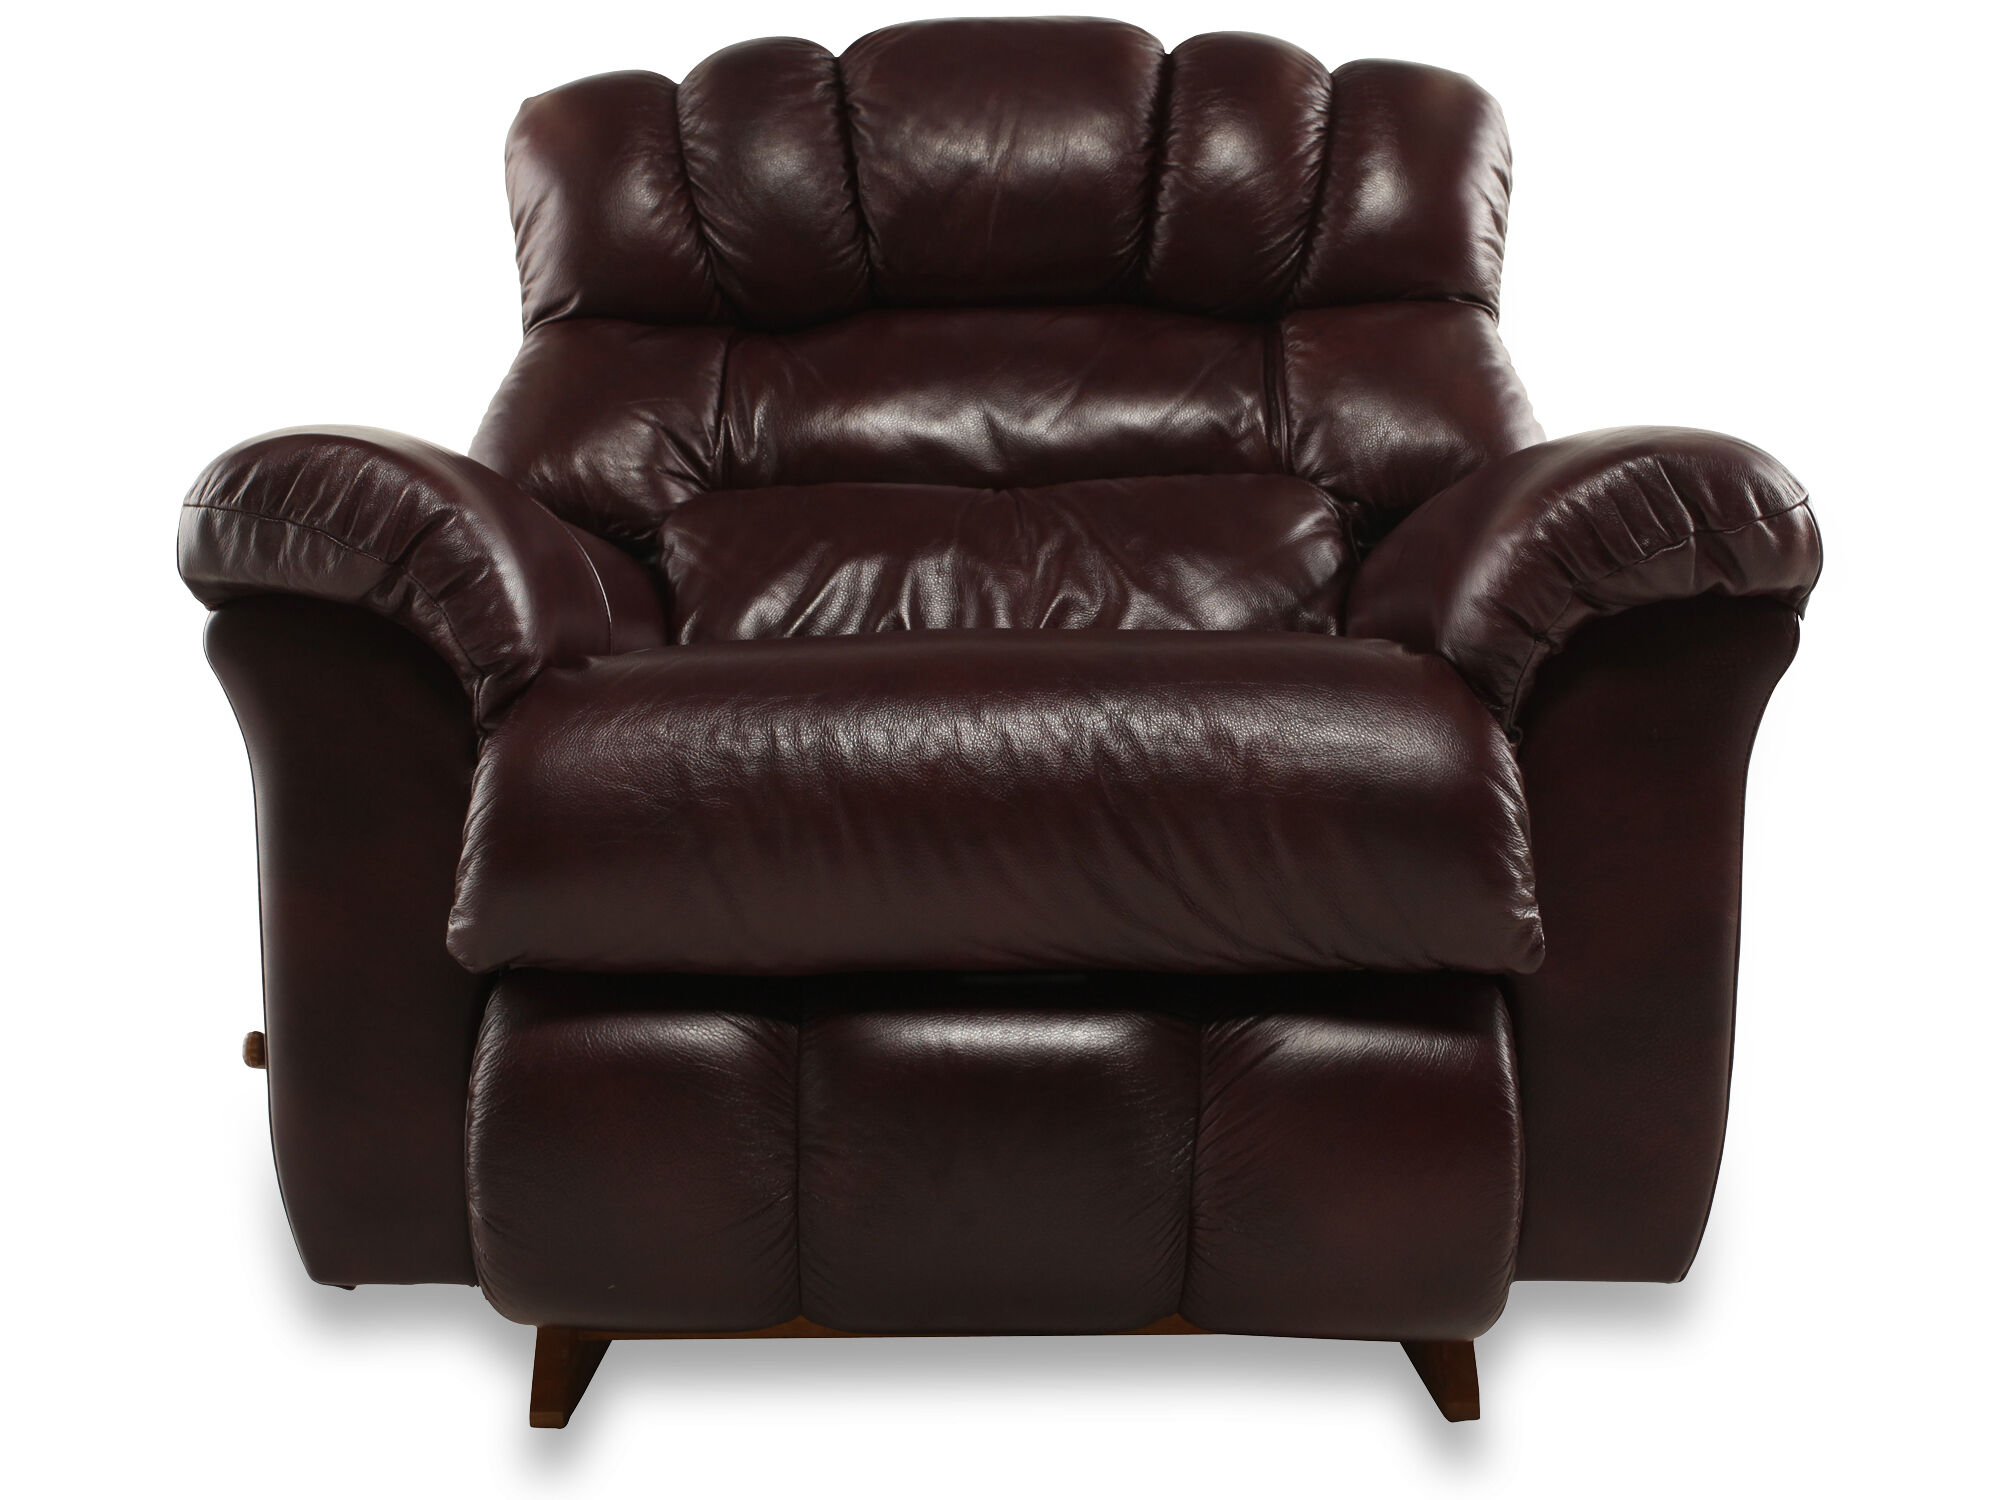 La-Z-Boy Crandell Bordeaux Leather Recliner  sc 1 st  Mathis Brothers & La-Z-Boy Crandell Bordeaux Leather Recliner | Mathis Brothers ... islam-shia.org